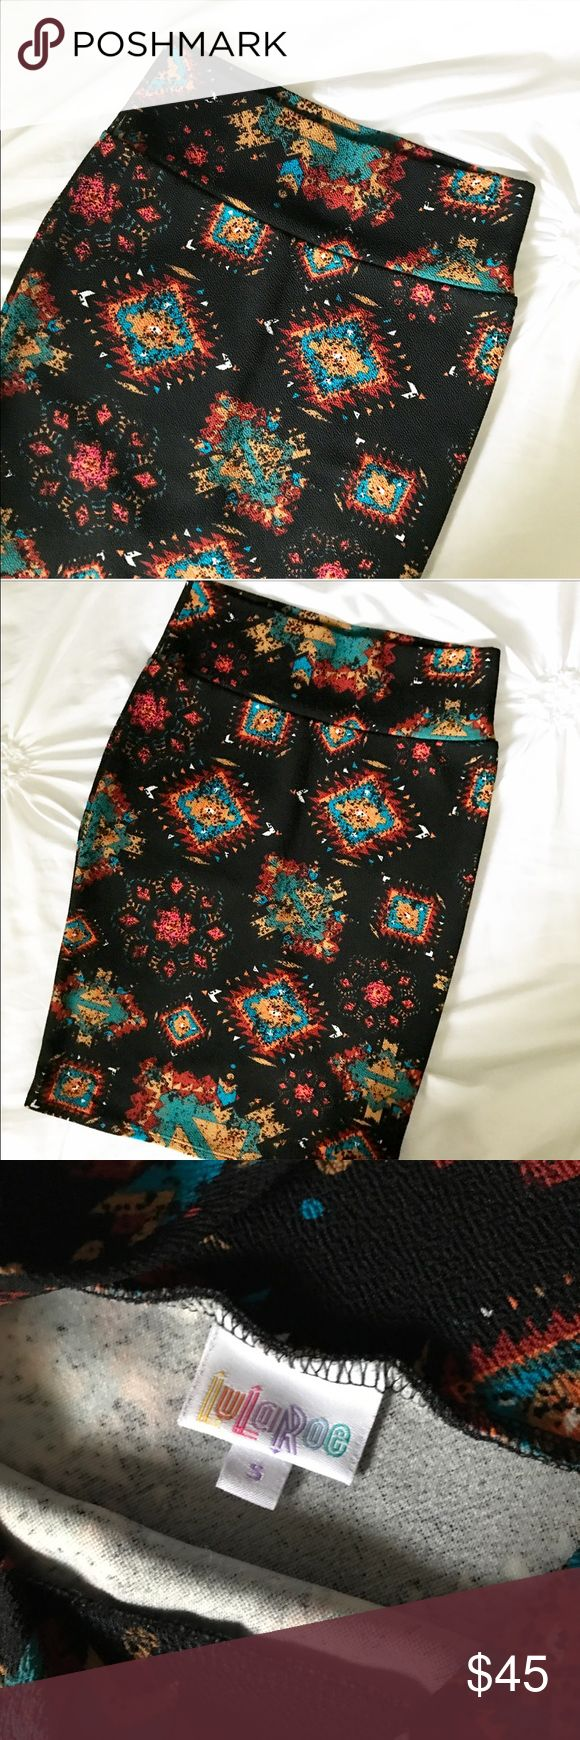 LuLaRoe  BLACK Aztec Print Cassie Skirt RARE Aztec print Cassie skirt with a BLACK background! This skirt is a gorgeous piece with lots of colors for mixing and matching!! In like new condition!!  LuLaRoe Skirts Pencil